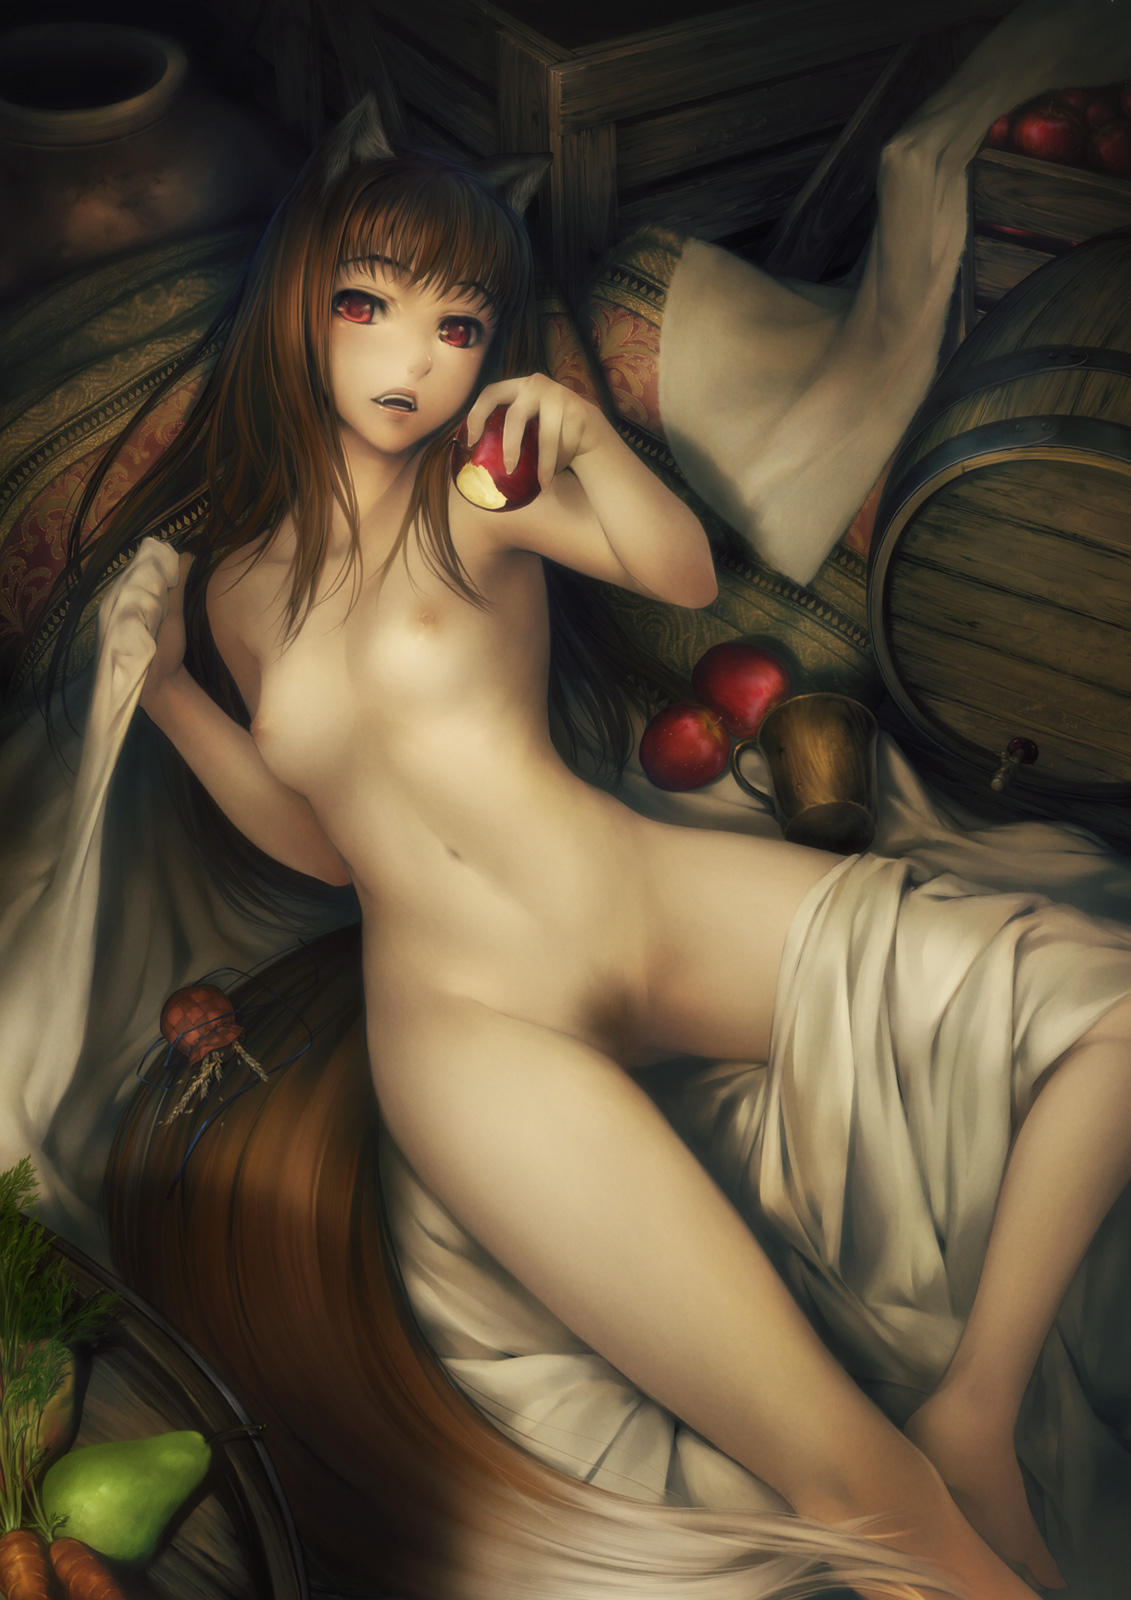 Naked anime wolf girl picture nsfw picture